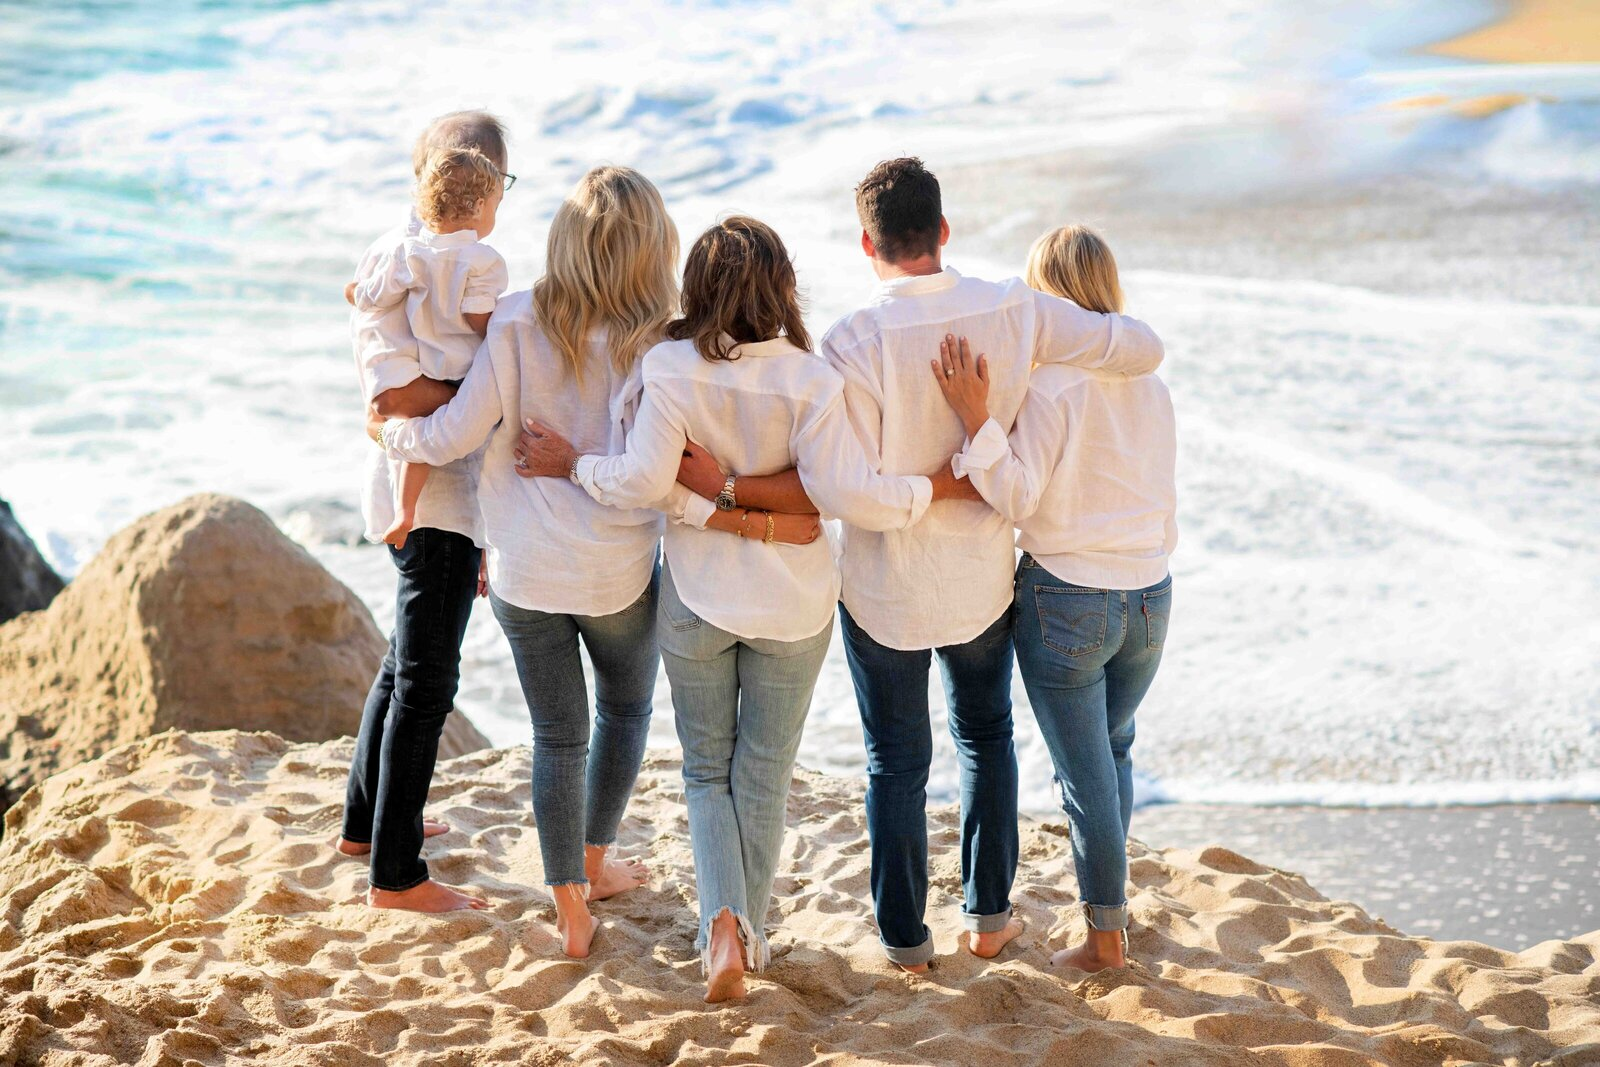 Maria-McCarthy-Photography-family-portrait-candid-beach